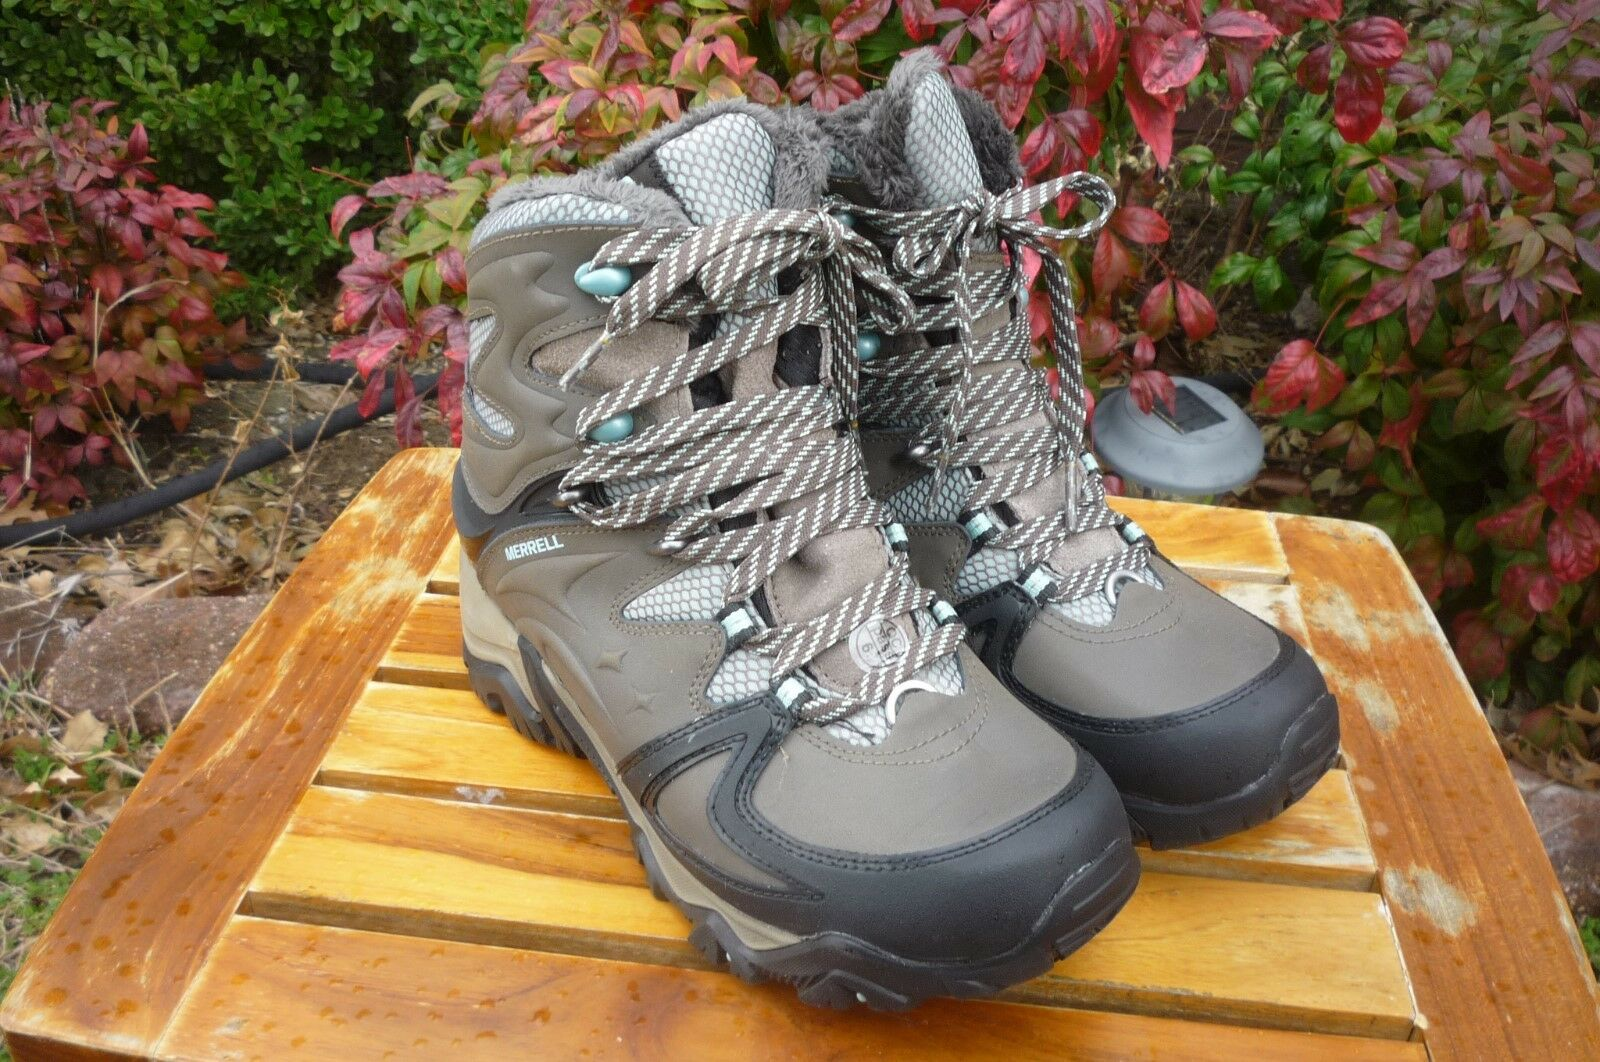 Wouomo NIB Merrell 7 B M Polarand 8 Boulder Waterproof Lace Up Winter stivali